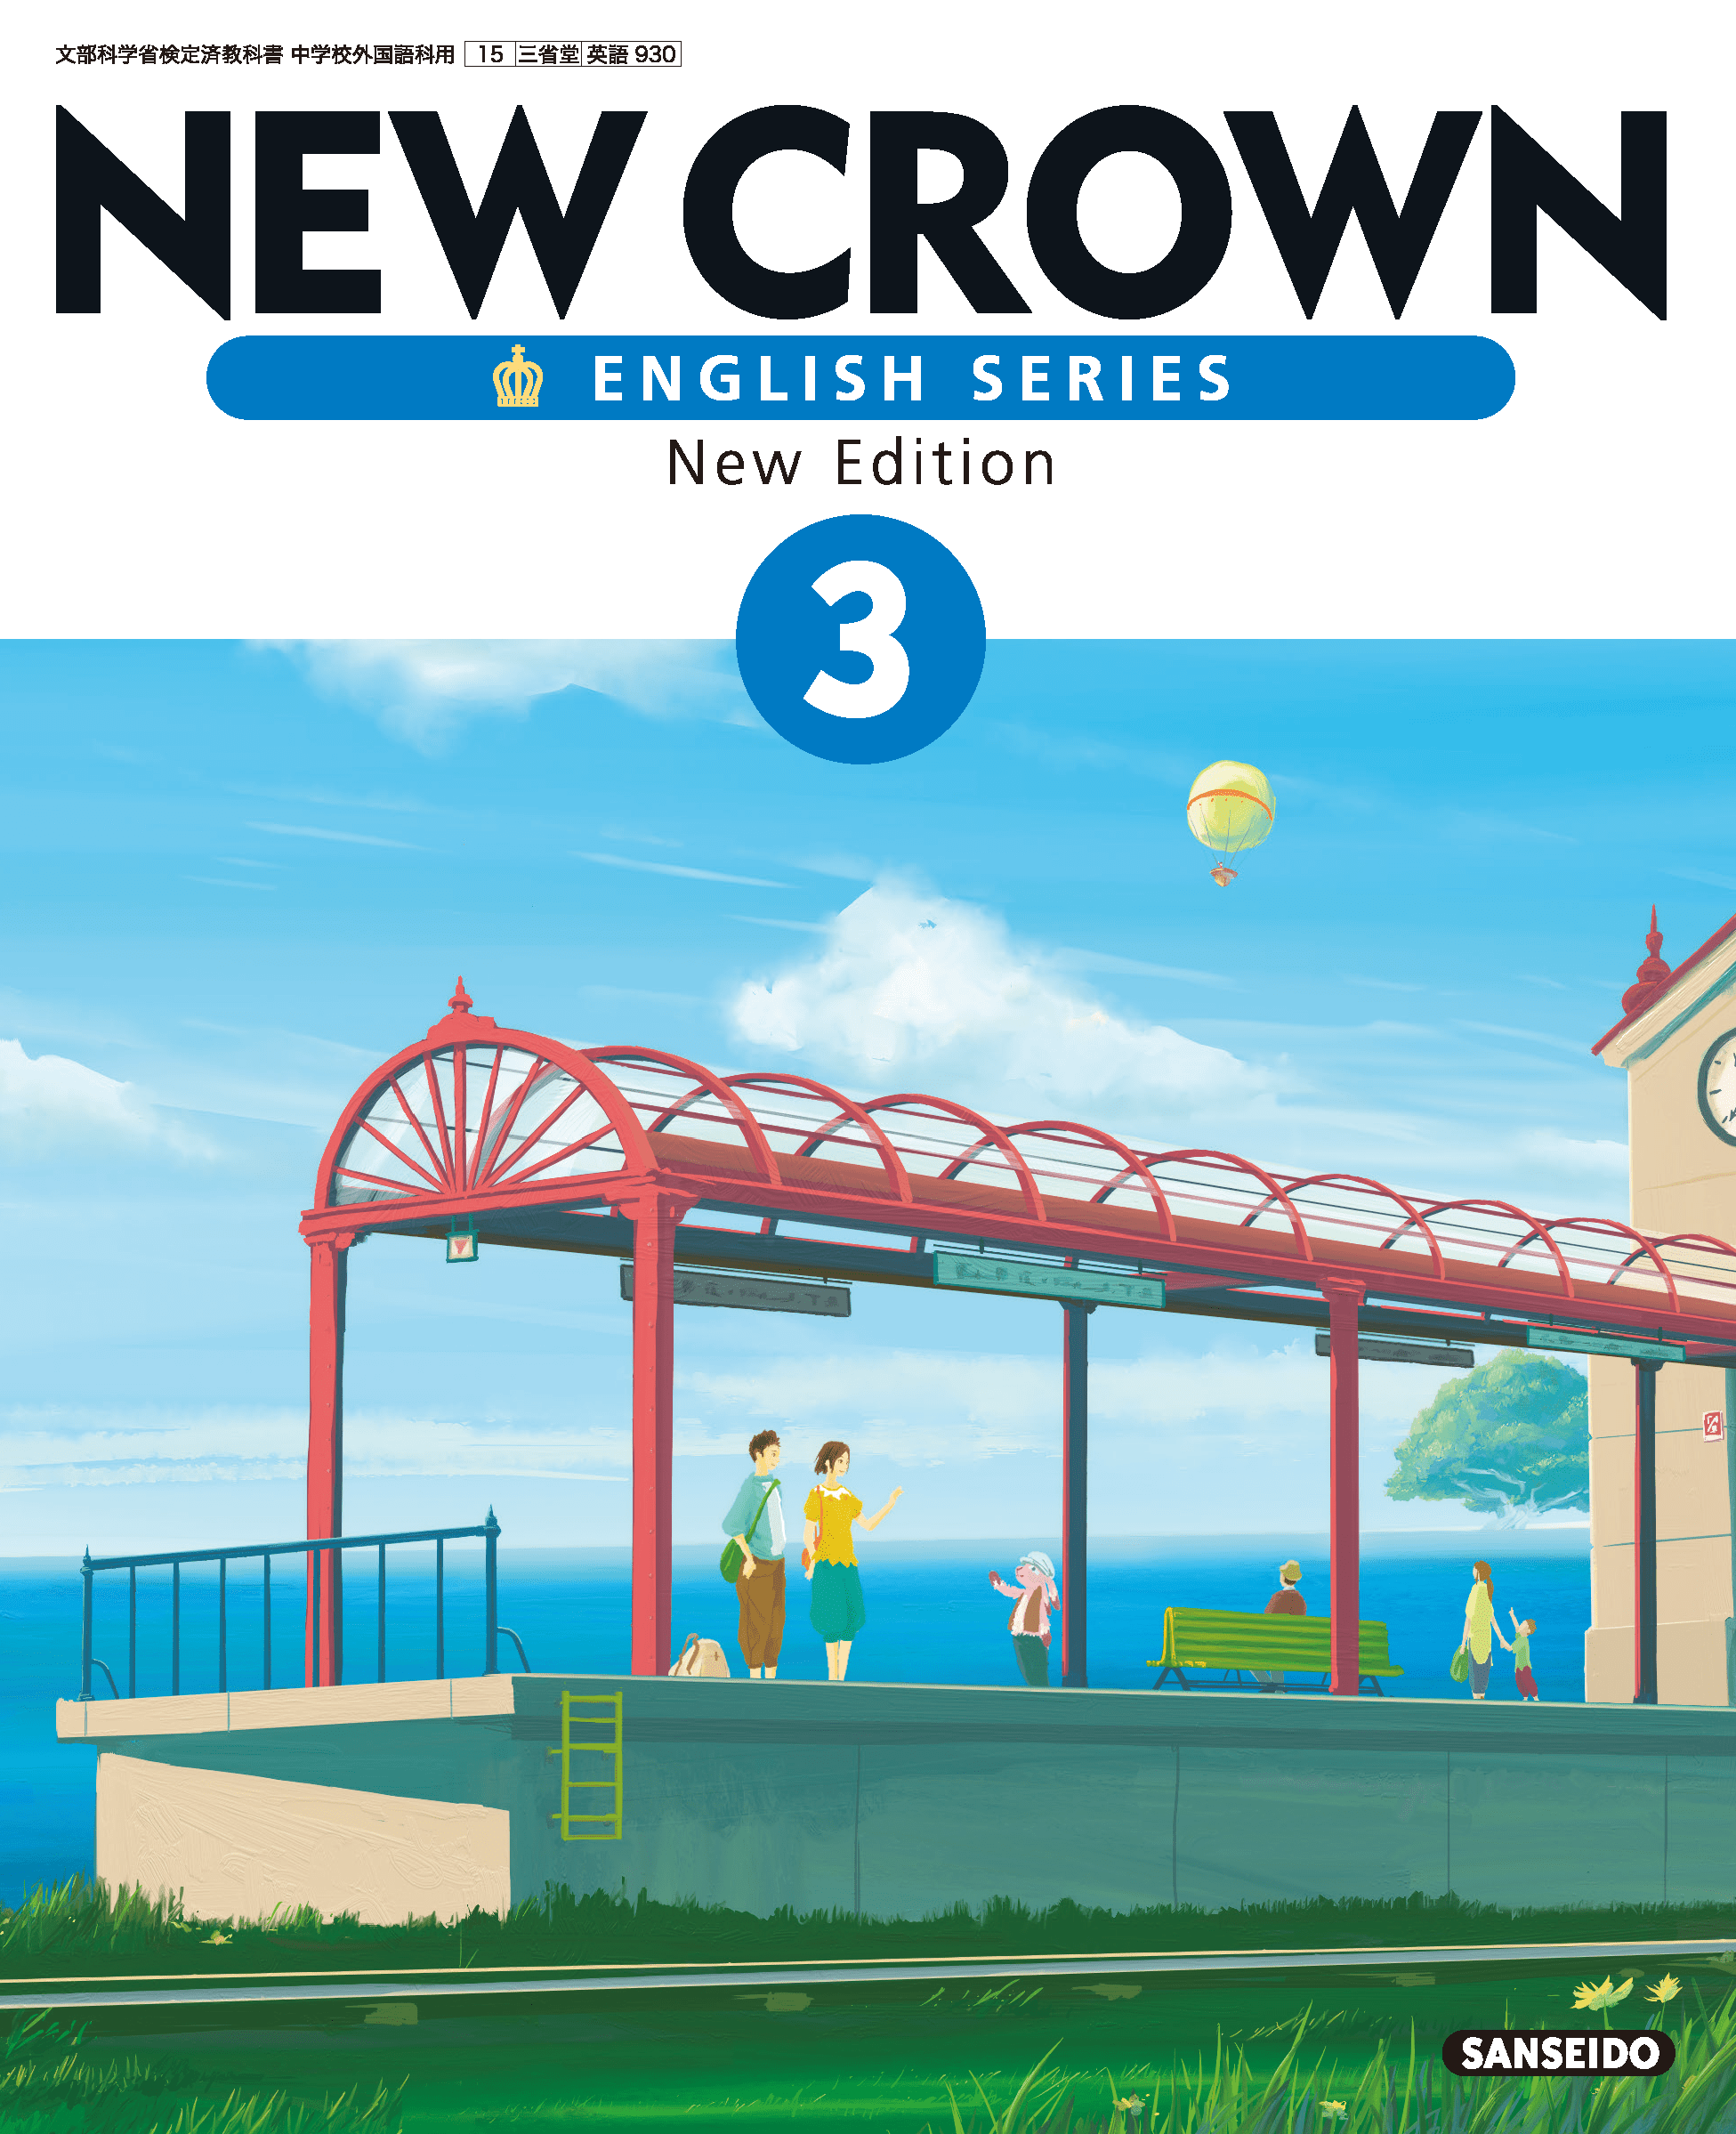 NEW CROWN ENGLISH SERIES 2 New Edition